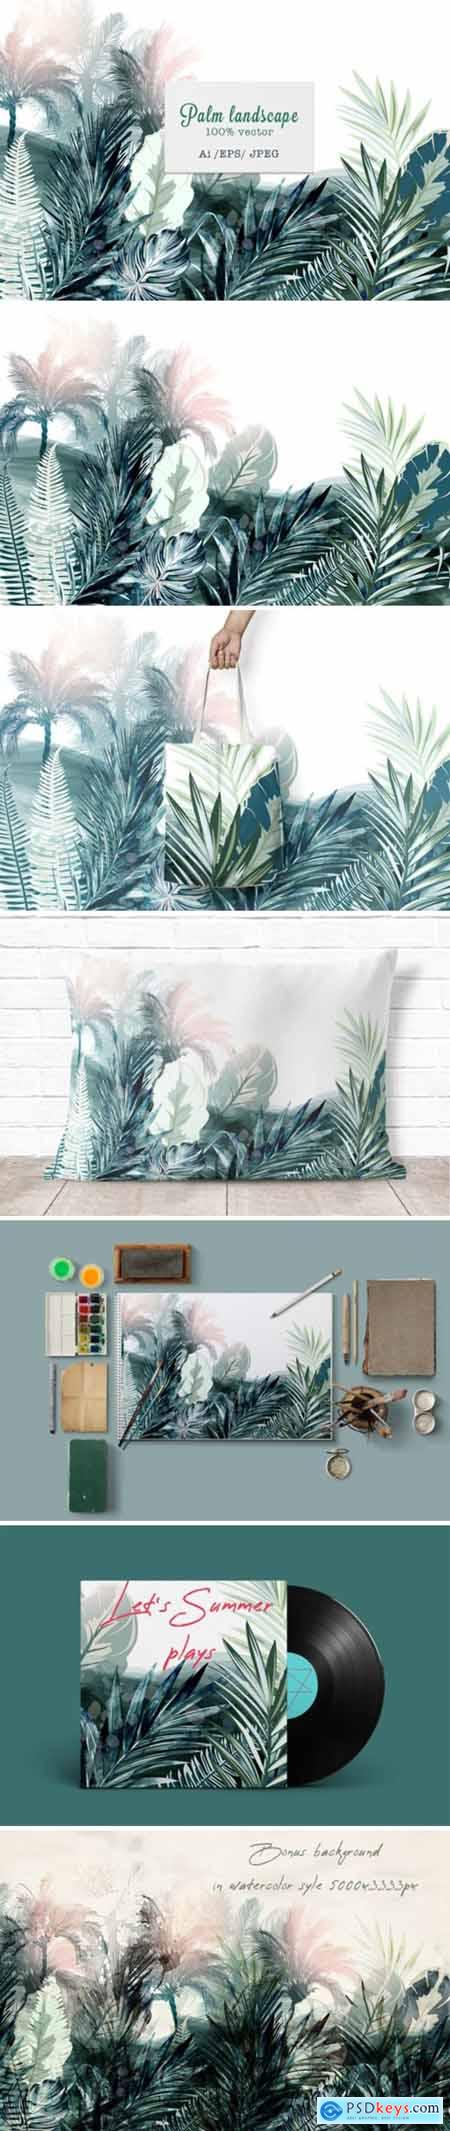 Tropical Landscape Vector Illustration 3799965